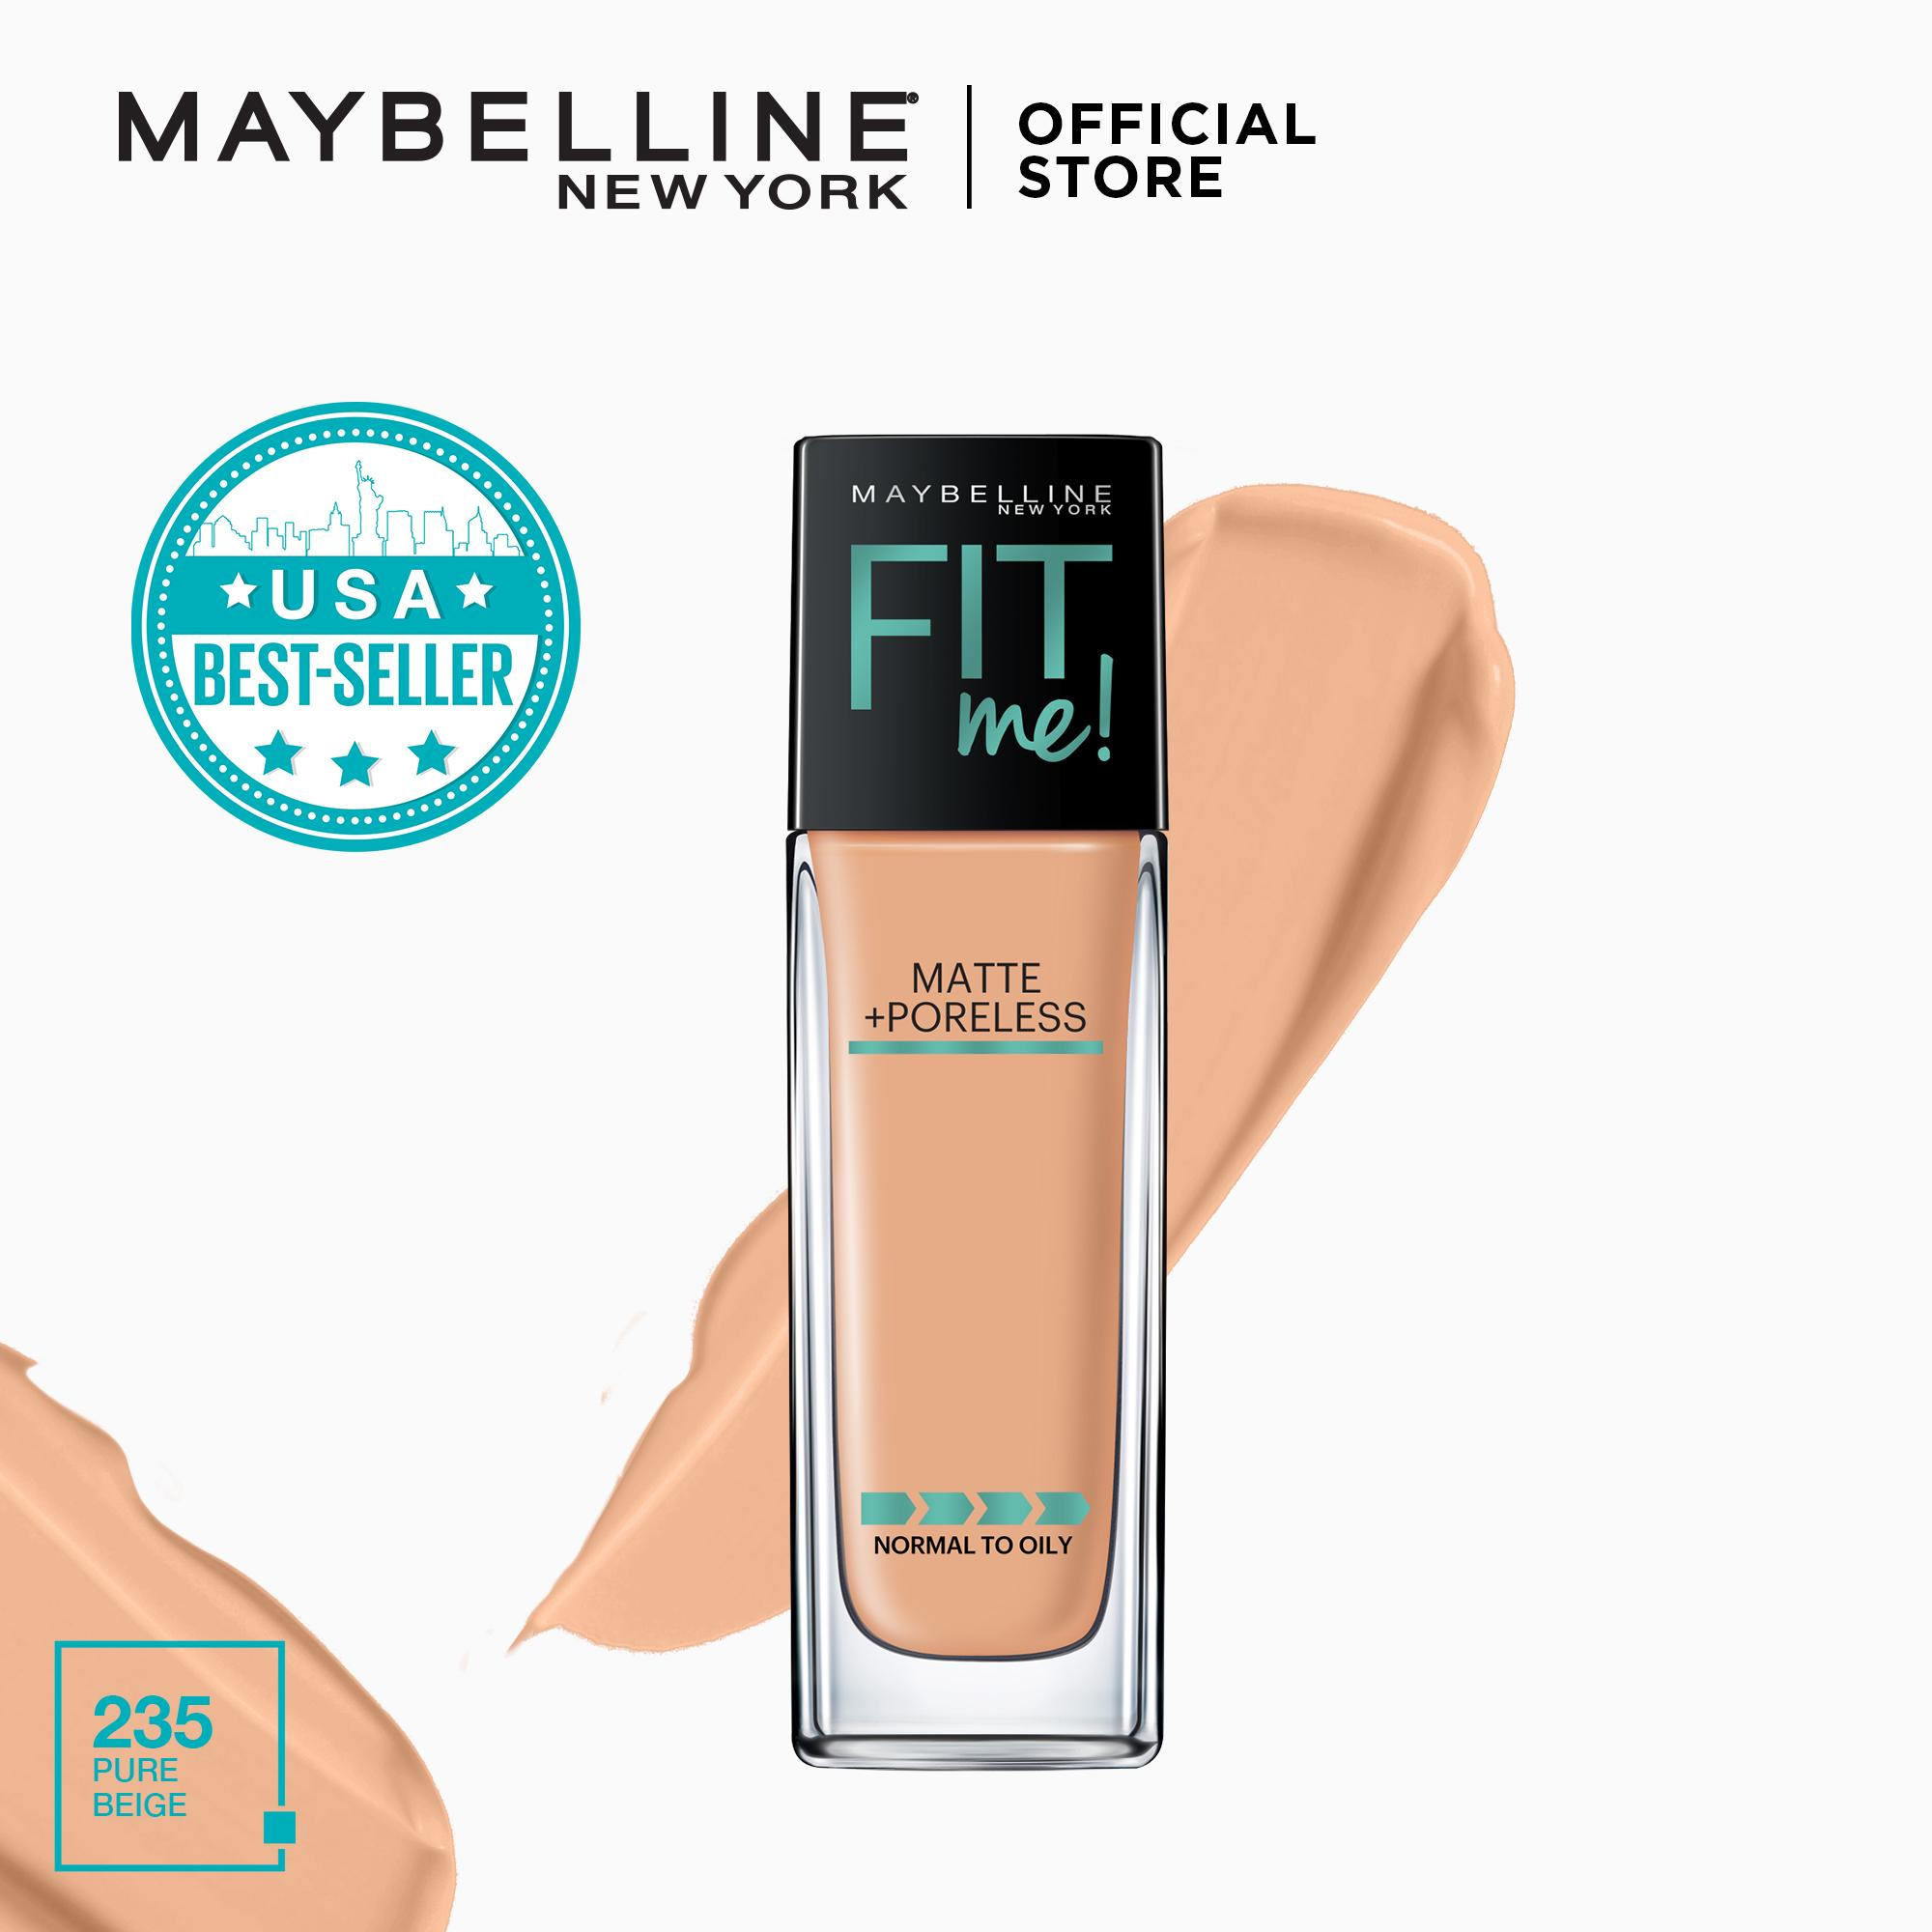 Maybelline Fit Me Matte + Poreless Liquid Foundation 30 Ml By Maybelline.